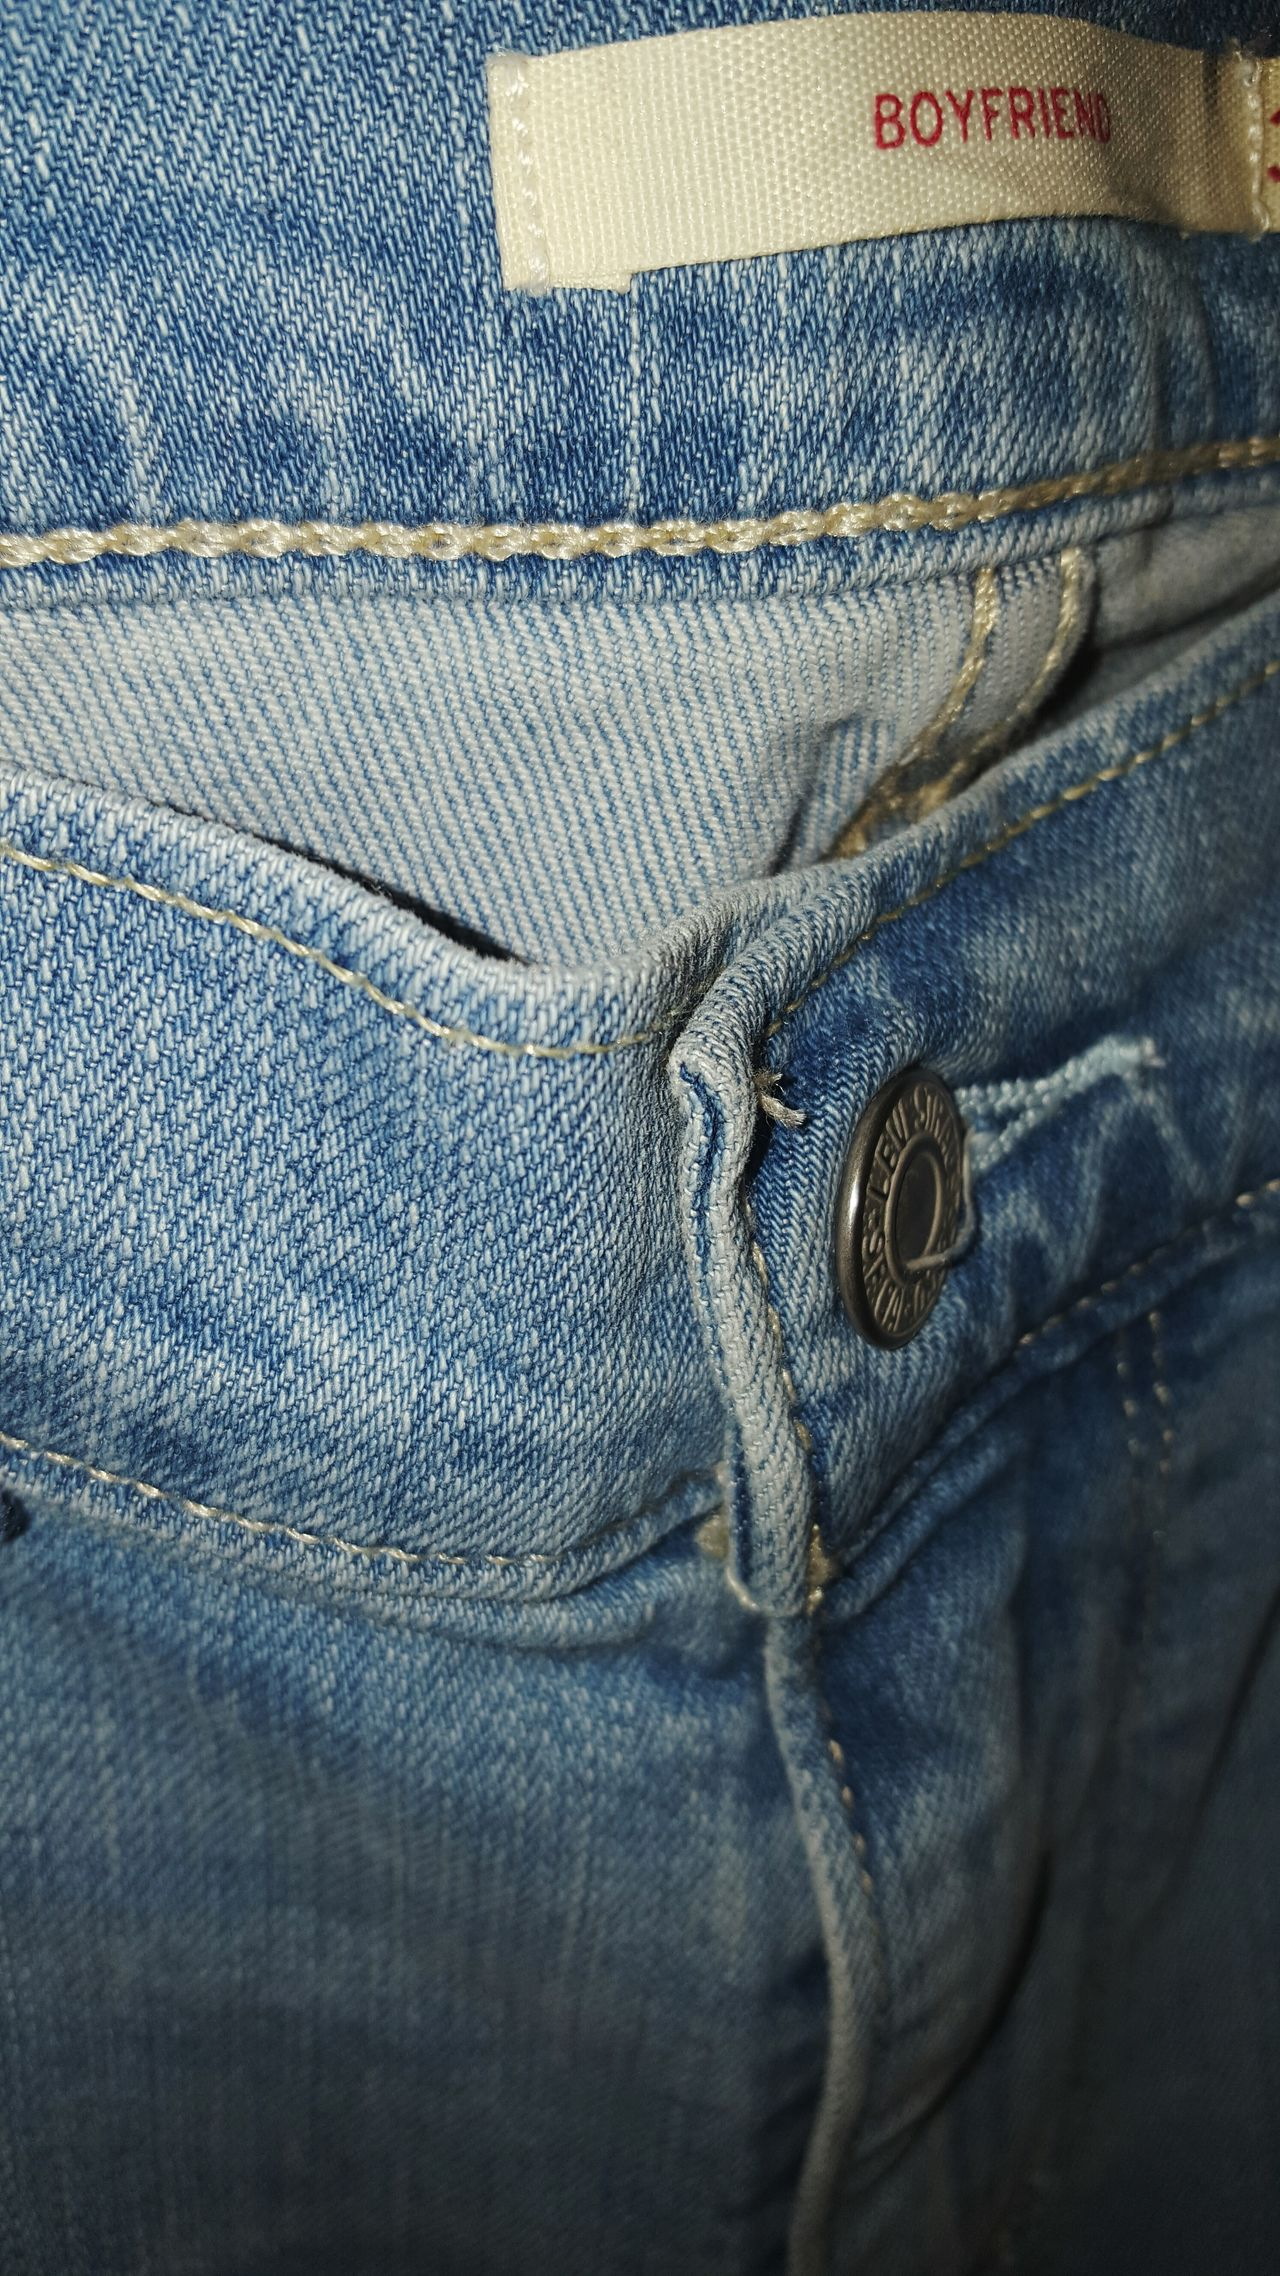 Levis BF Jean Full Frame Close-up Textile Backgrounds Jeans Textured  No People Pocket  Cloth Day LEVIS™ Boyfriend Jeans